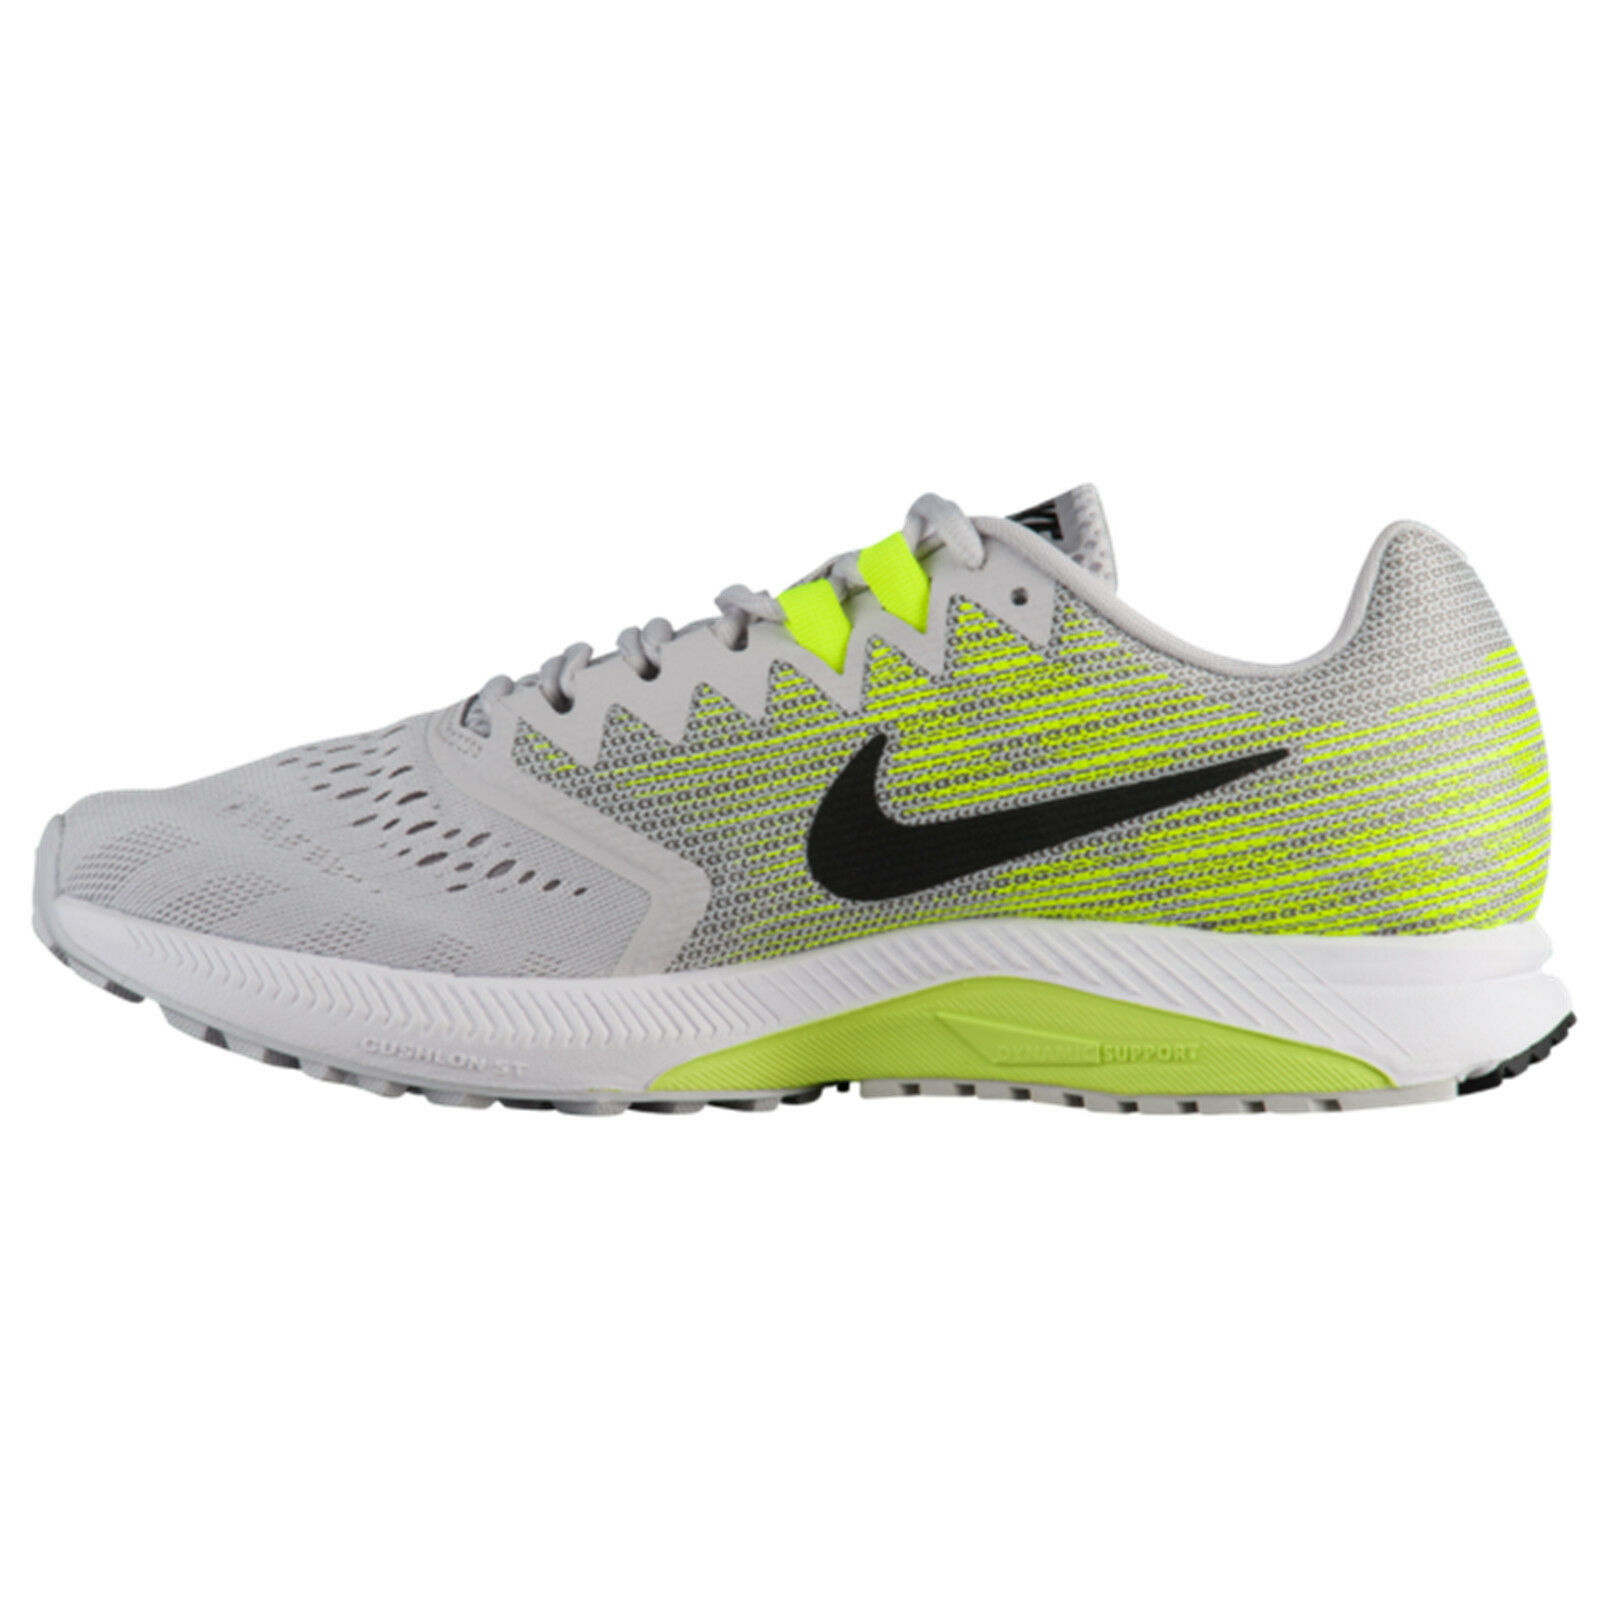 Box With Hommes Nike Chaussures Zoom Running 2 Span new qUw8pwIzn